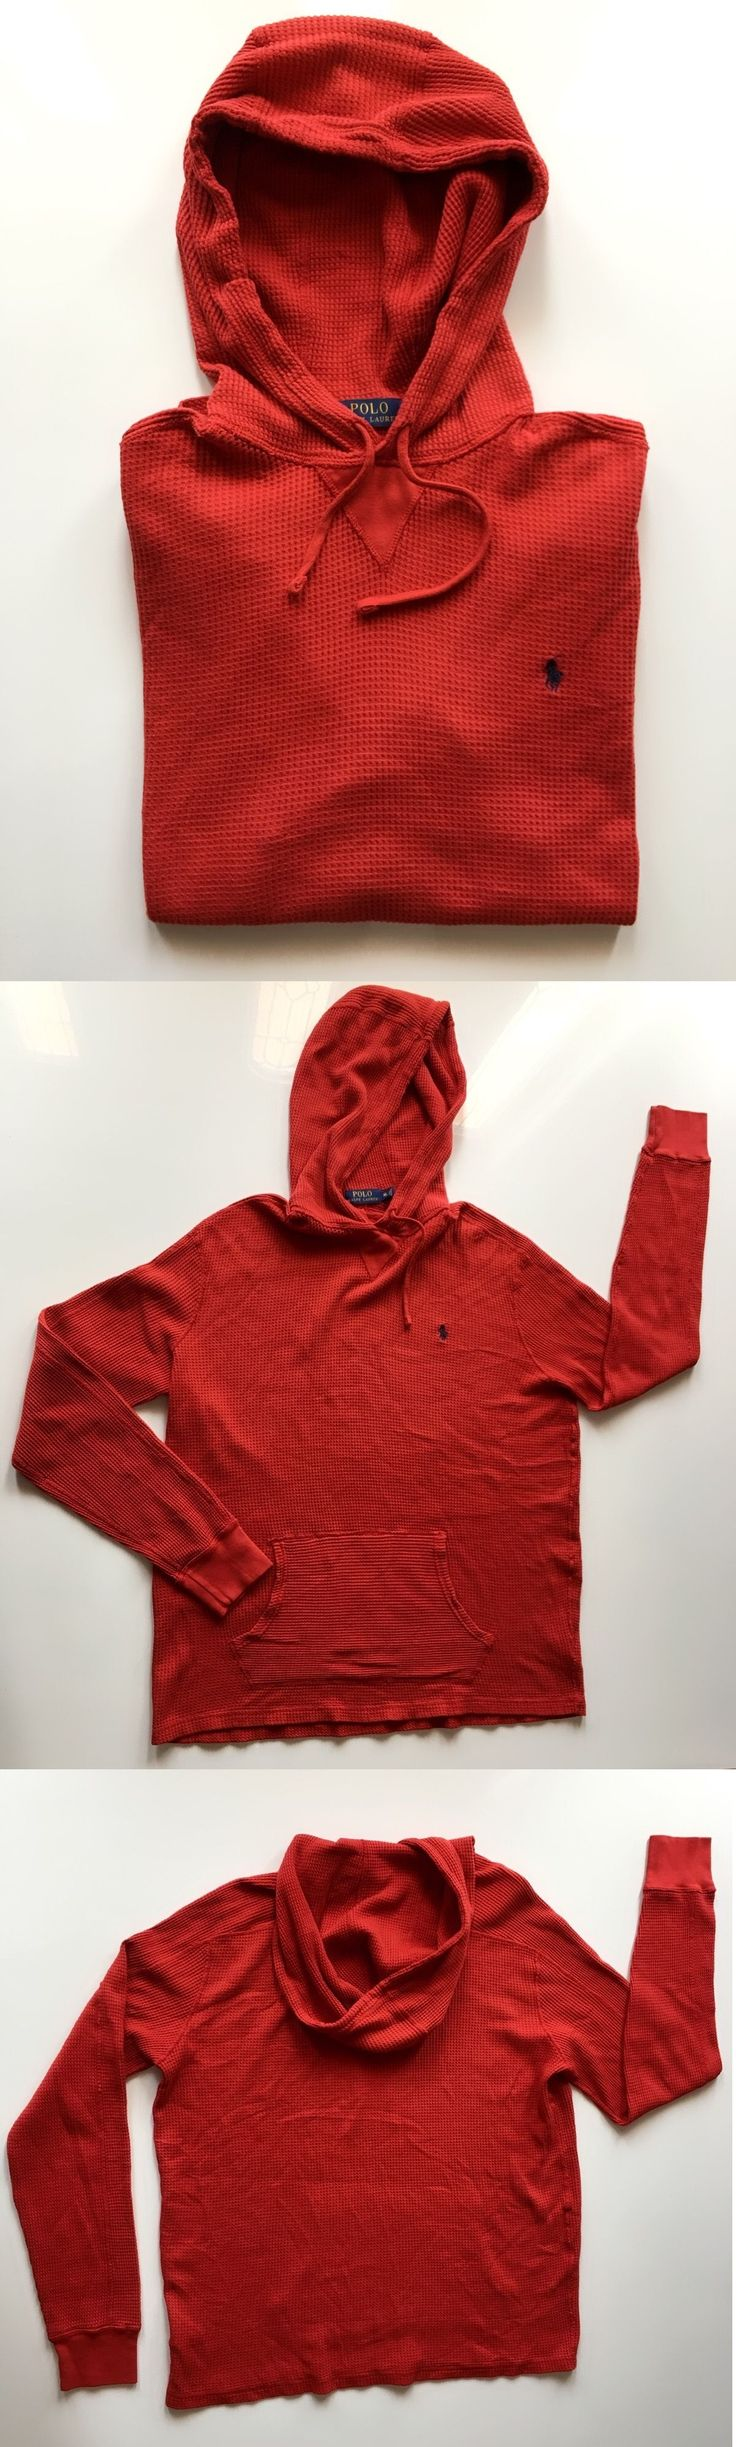 Sweats and Hoodies 155183: Men S Polo Ralph Lauren Waffle Cotton Hoodie Bistro Red, Size: Xl -> BUY IT NOW ONLY: $34.5 on eBay!